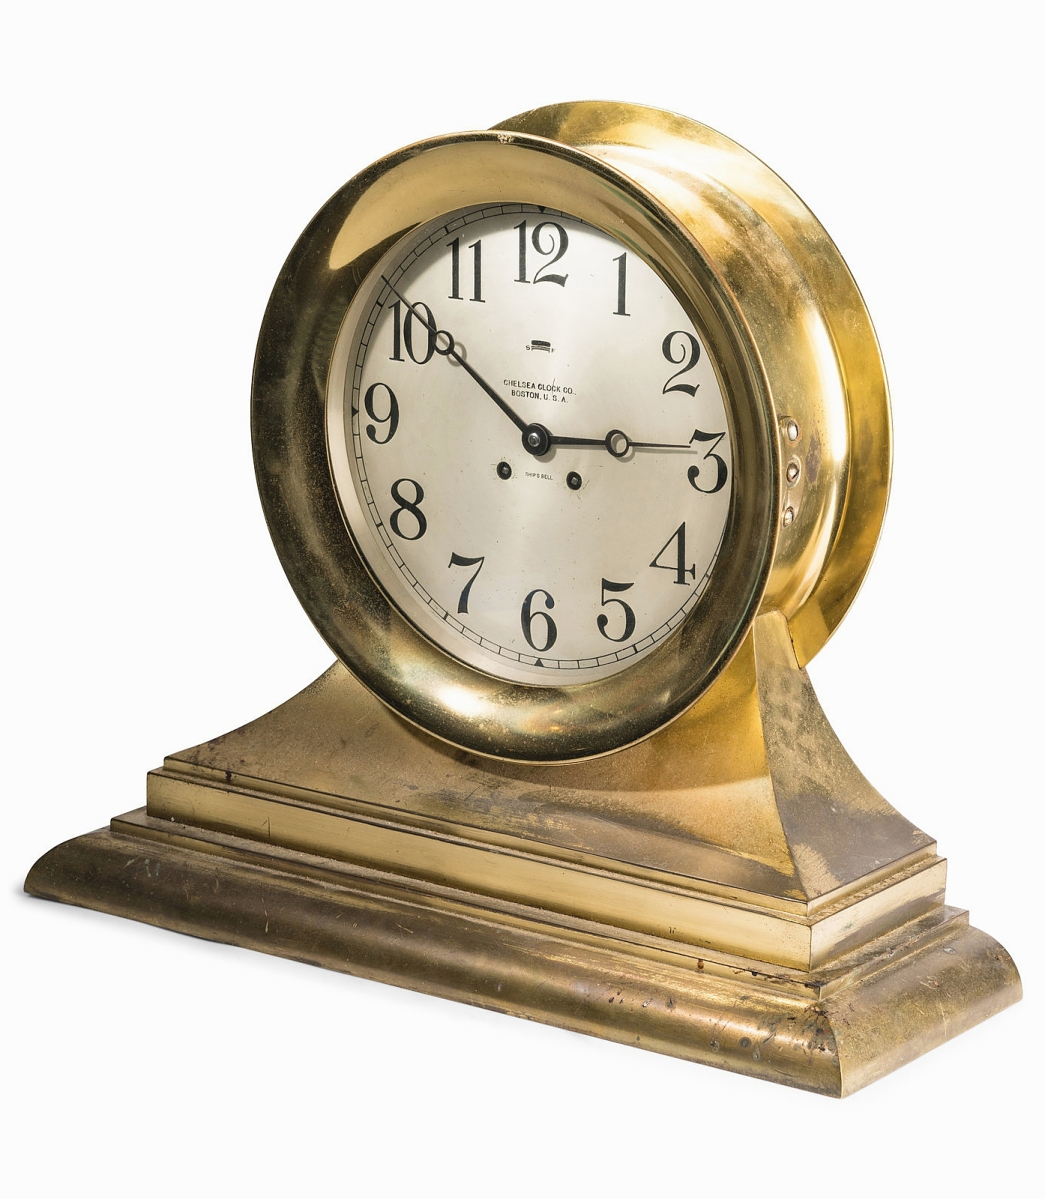 An American buyer, bidding for the first time at Hindman, prevailed against competition to acquire this Chelsea ship's bell-metal mantel clock for $12,500. Ben Fisher thought the large size — 16½ inches high by 18¾ inches wide — may have helped drive support, which also had a label to the William Wrigley Jr archives ($3/5,000).